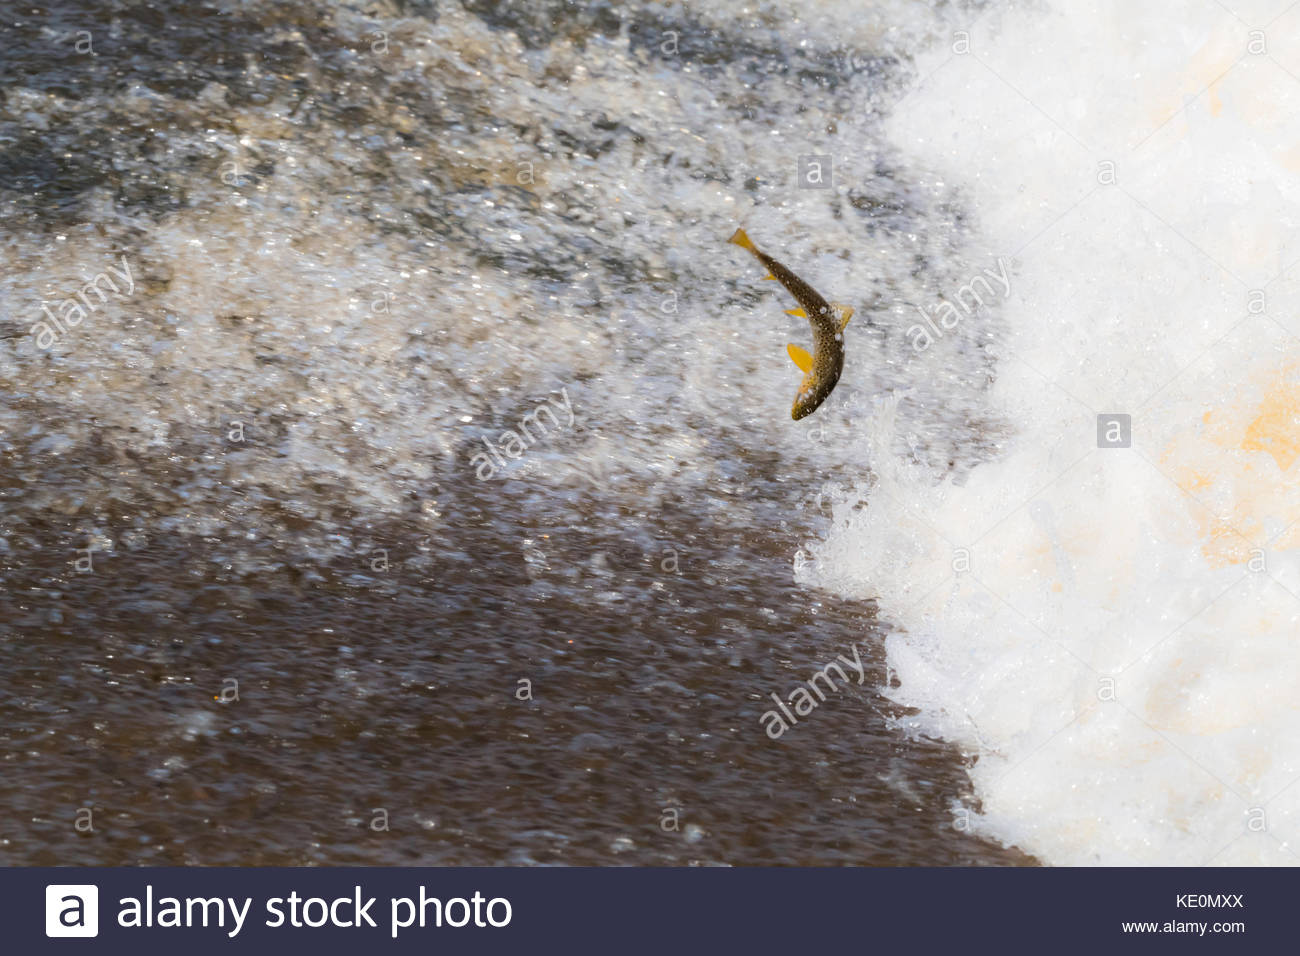 Selkirk, Scottish Borders, UK. 17th Oct, 2017. A Brown Trout (Salmo Trutta) leaps upstream over a cauld on the Ettrick - Stock Image